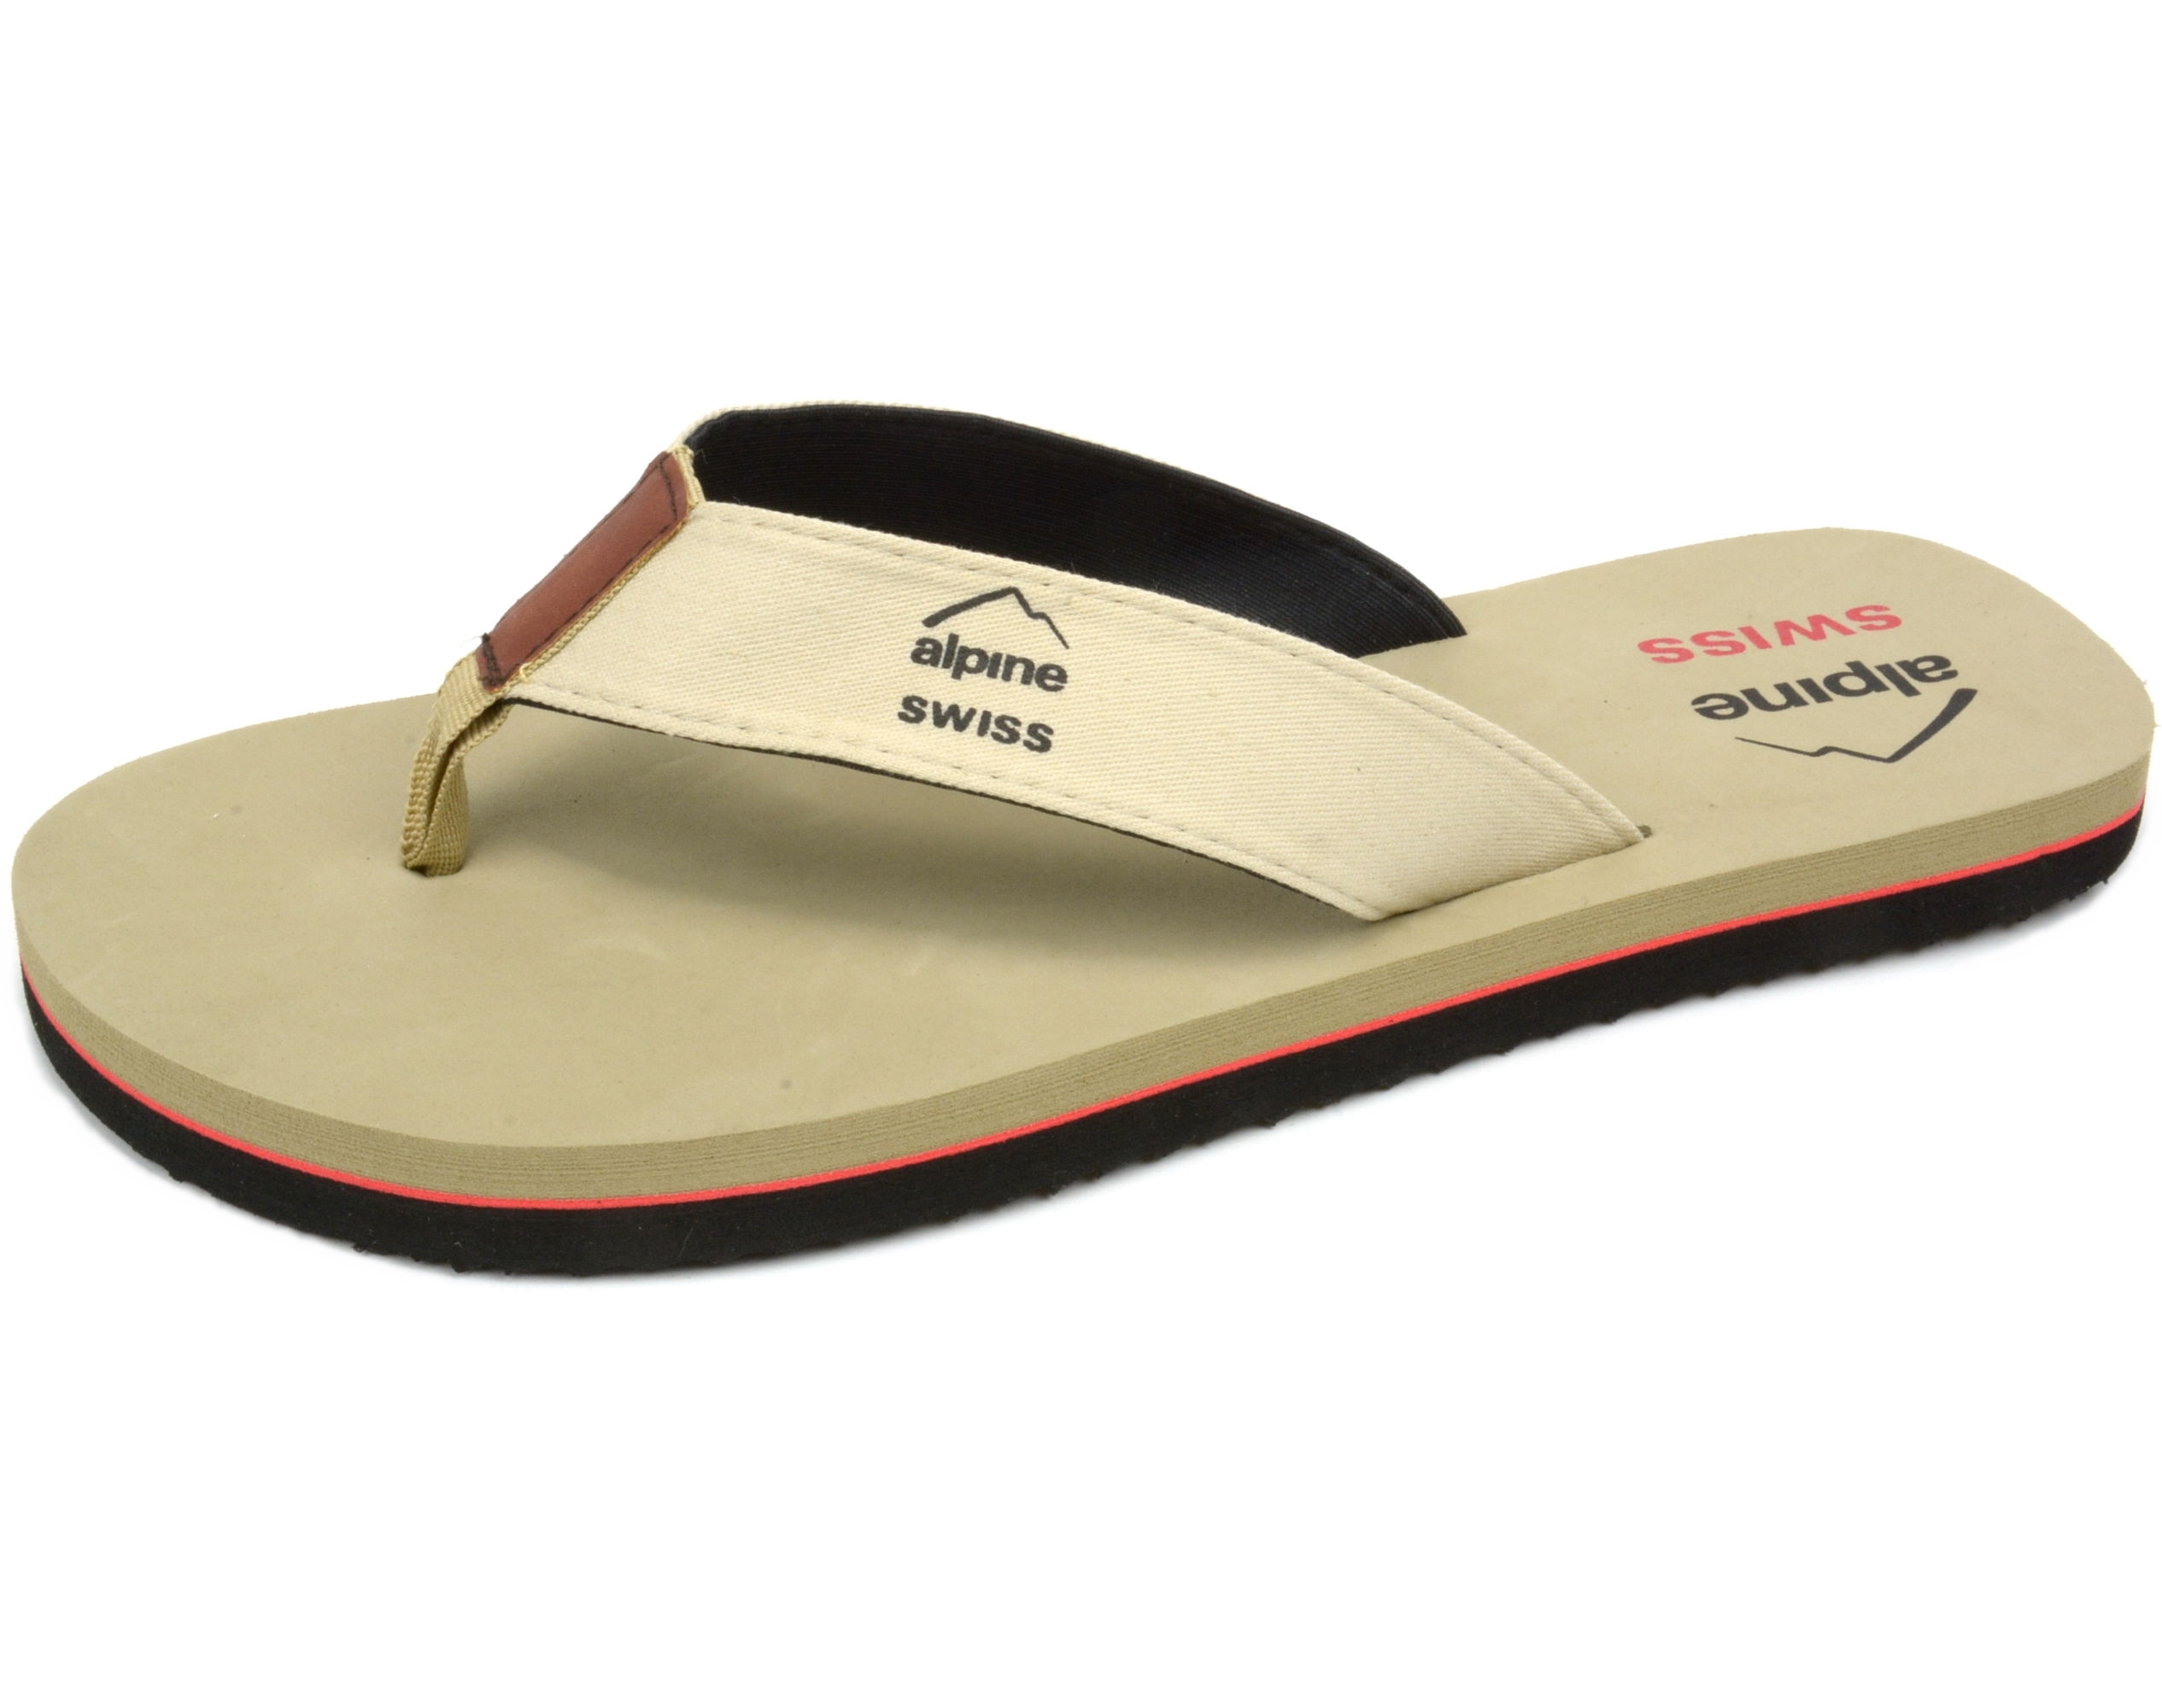 Alpine-Swiss-Men-039-s-Flip-Flops-Beach-Sandals-Lightweight-EVA-Sole-Comfort-Thongs